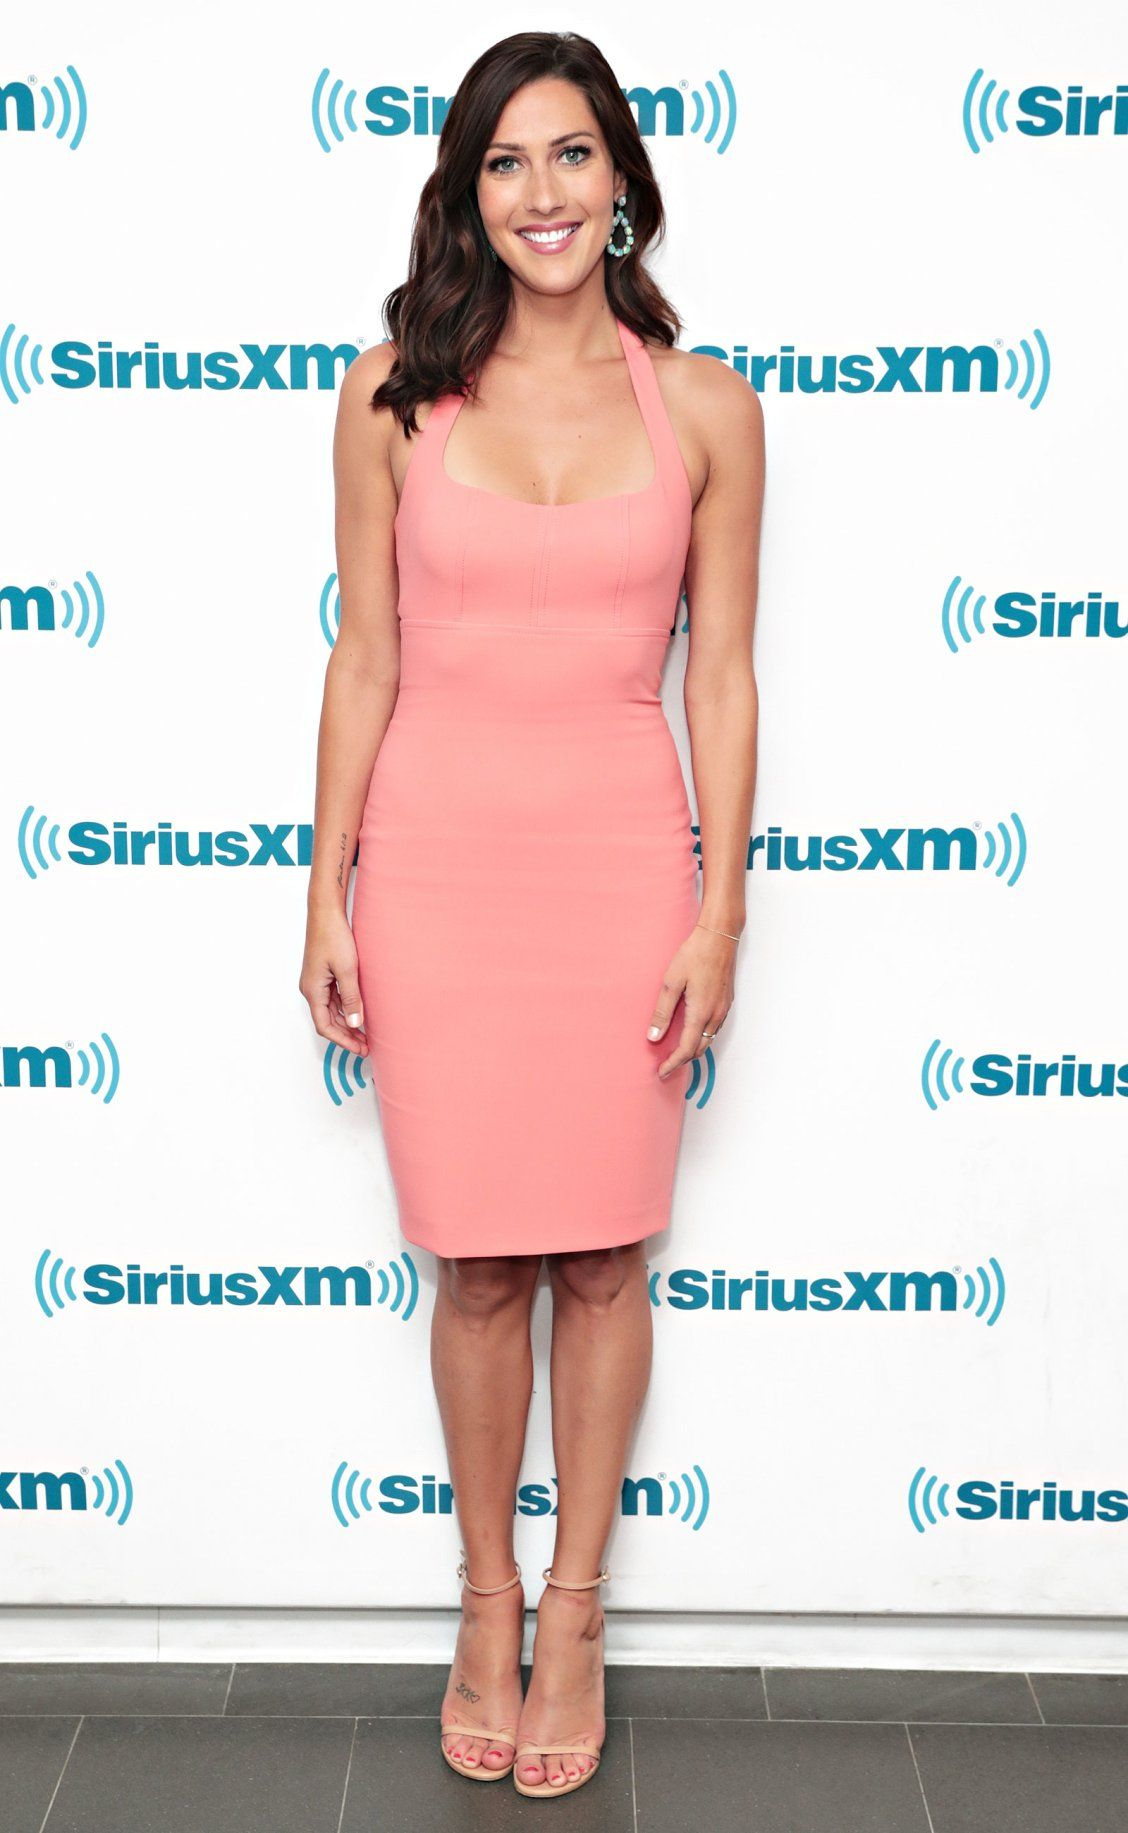 28814d7edf5e Pink halter dress - click through for more date outfit ideas from The Bachelorette  Becca Kufrin!